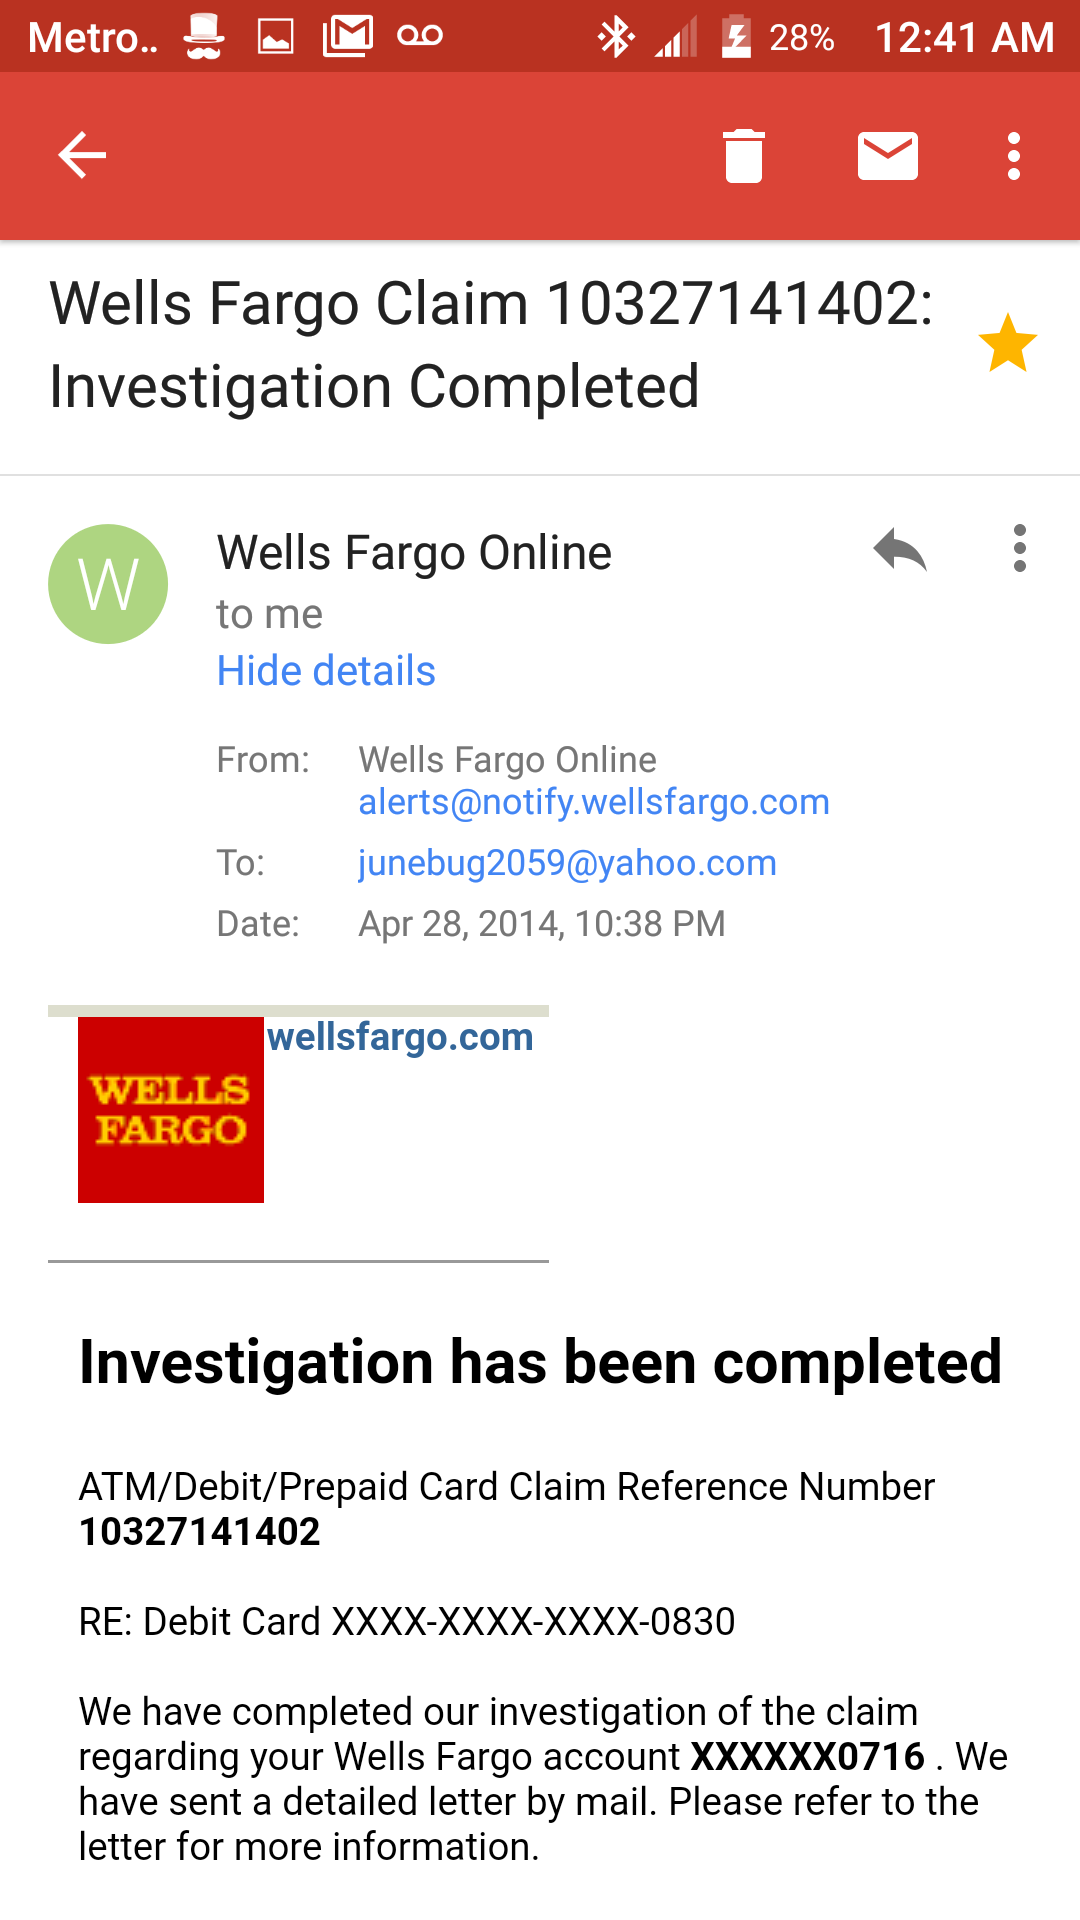 Wells Fargo Customer Service Complaints Department Wiring Instructions For Had Intention On Maintaining Our Account And Growing That Was Snatched From Us We Have Not Received Any Form Of Help To Obtain Fundspls